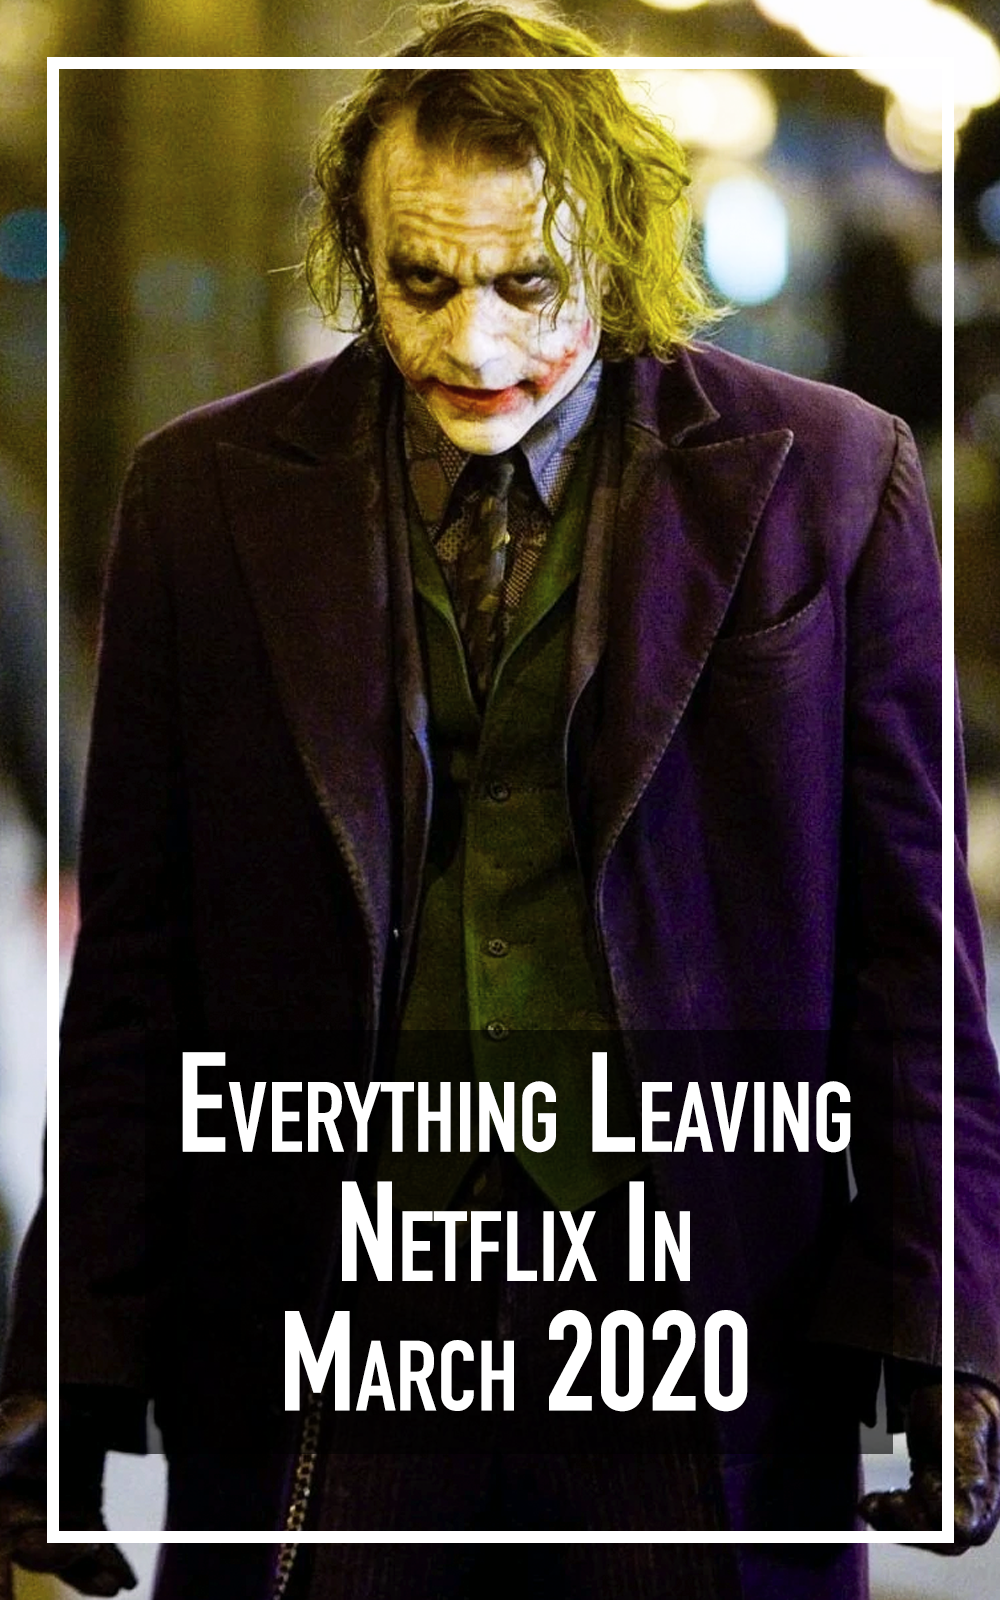 Everything Leaving Netflix In March 2020 in 2020 New